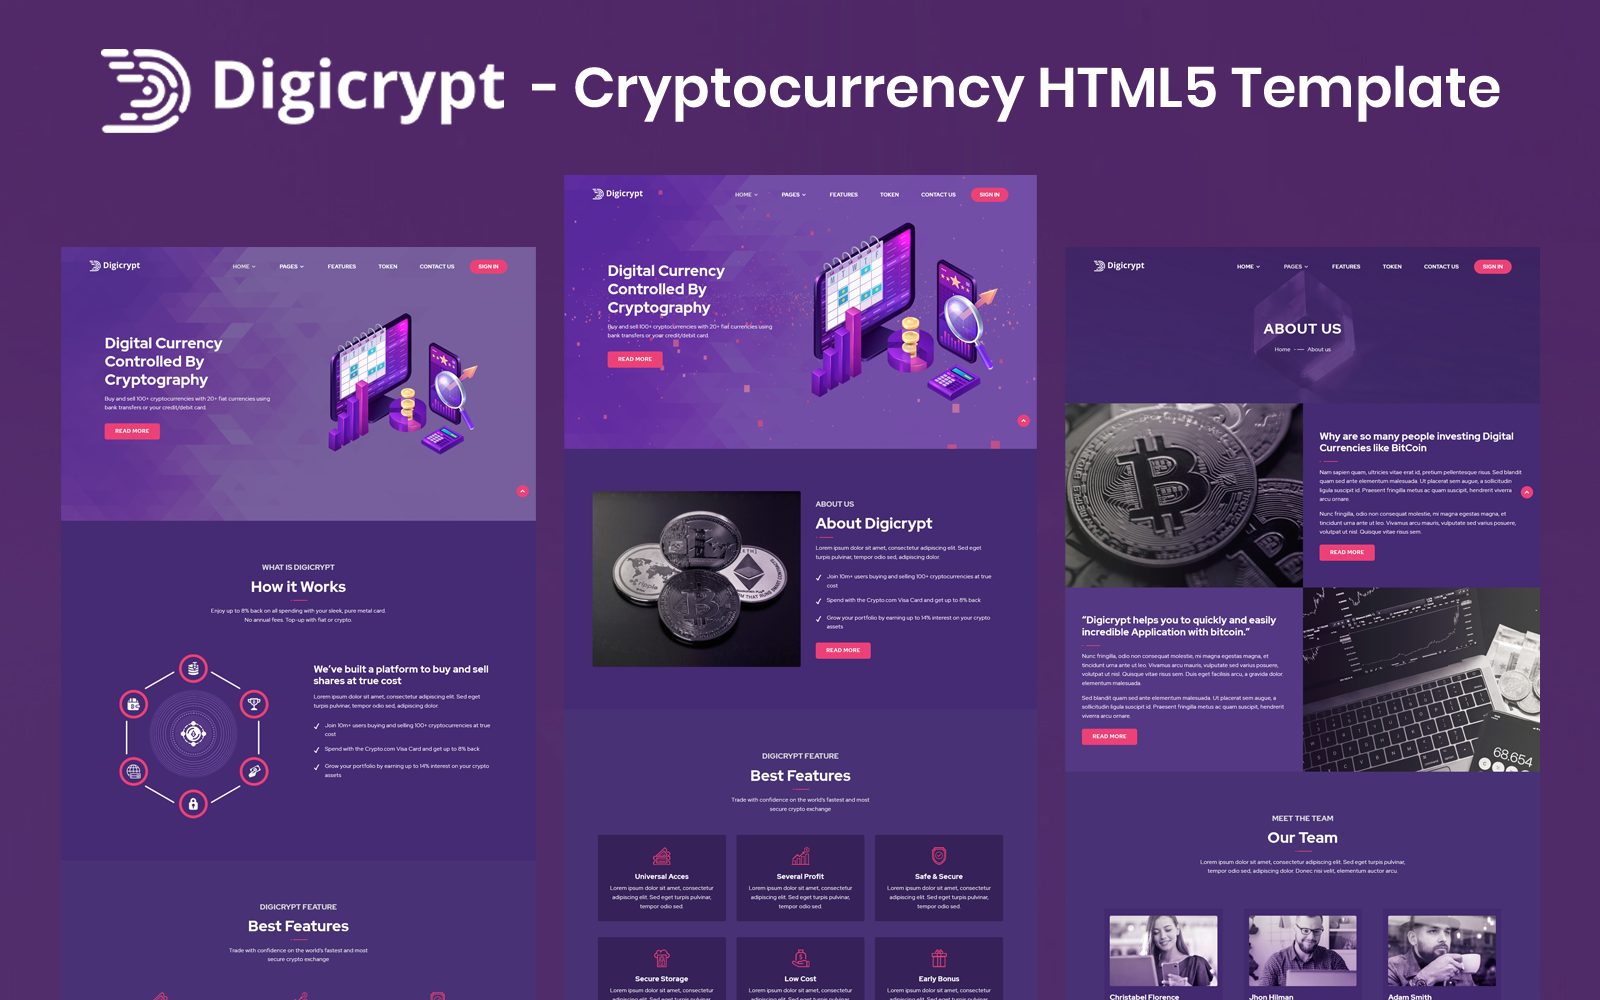 Digicrypt - Cryptocurrency HTML5 Template